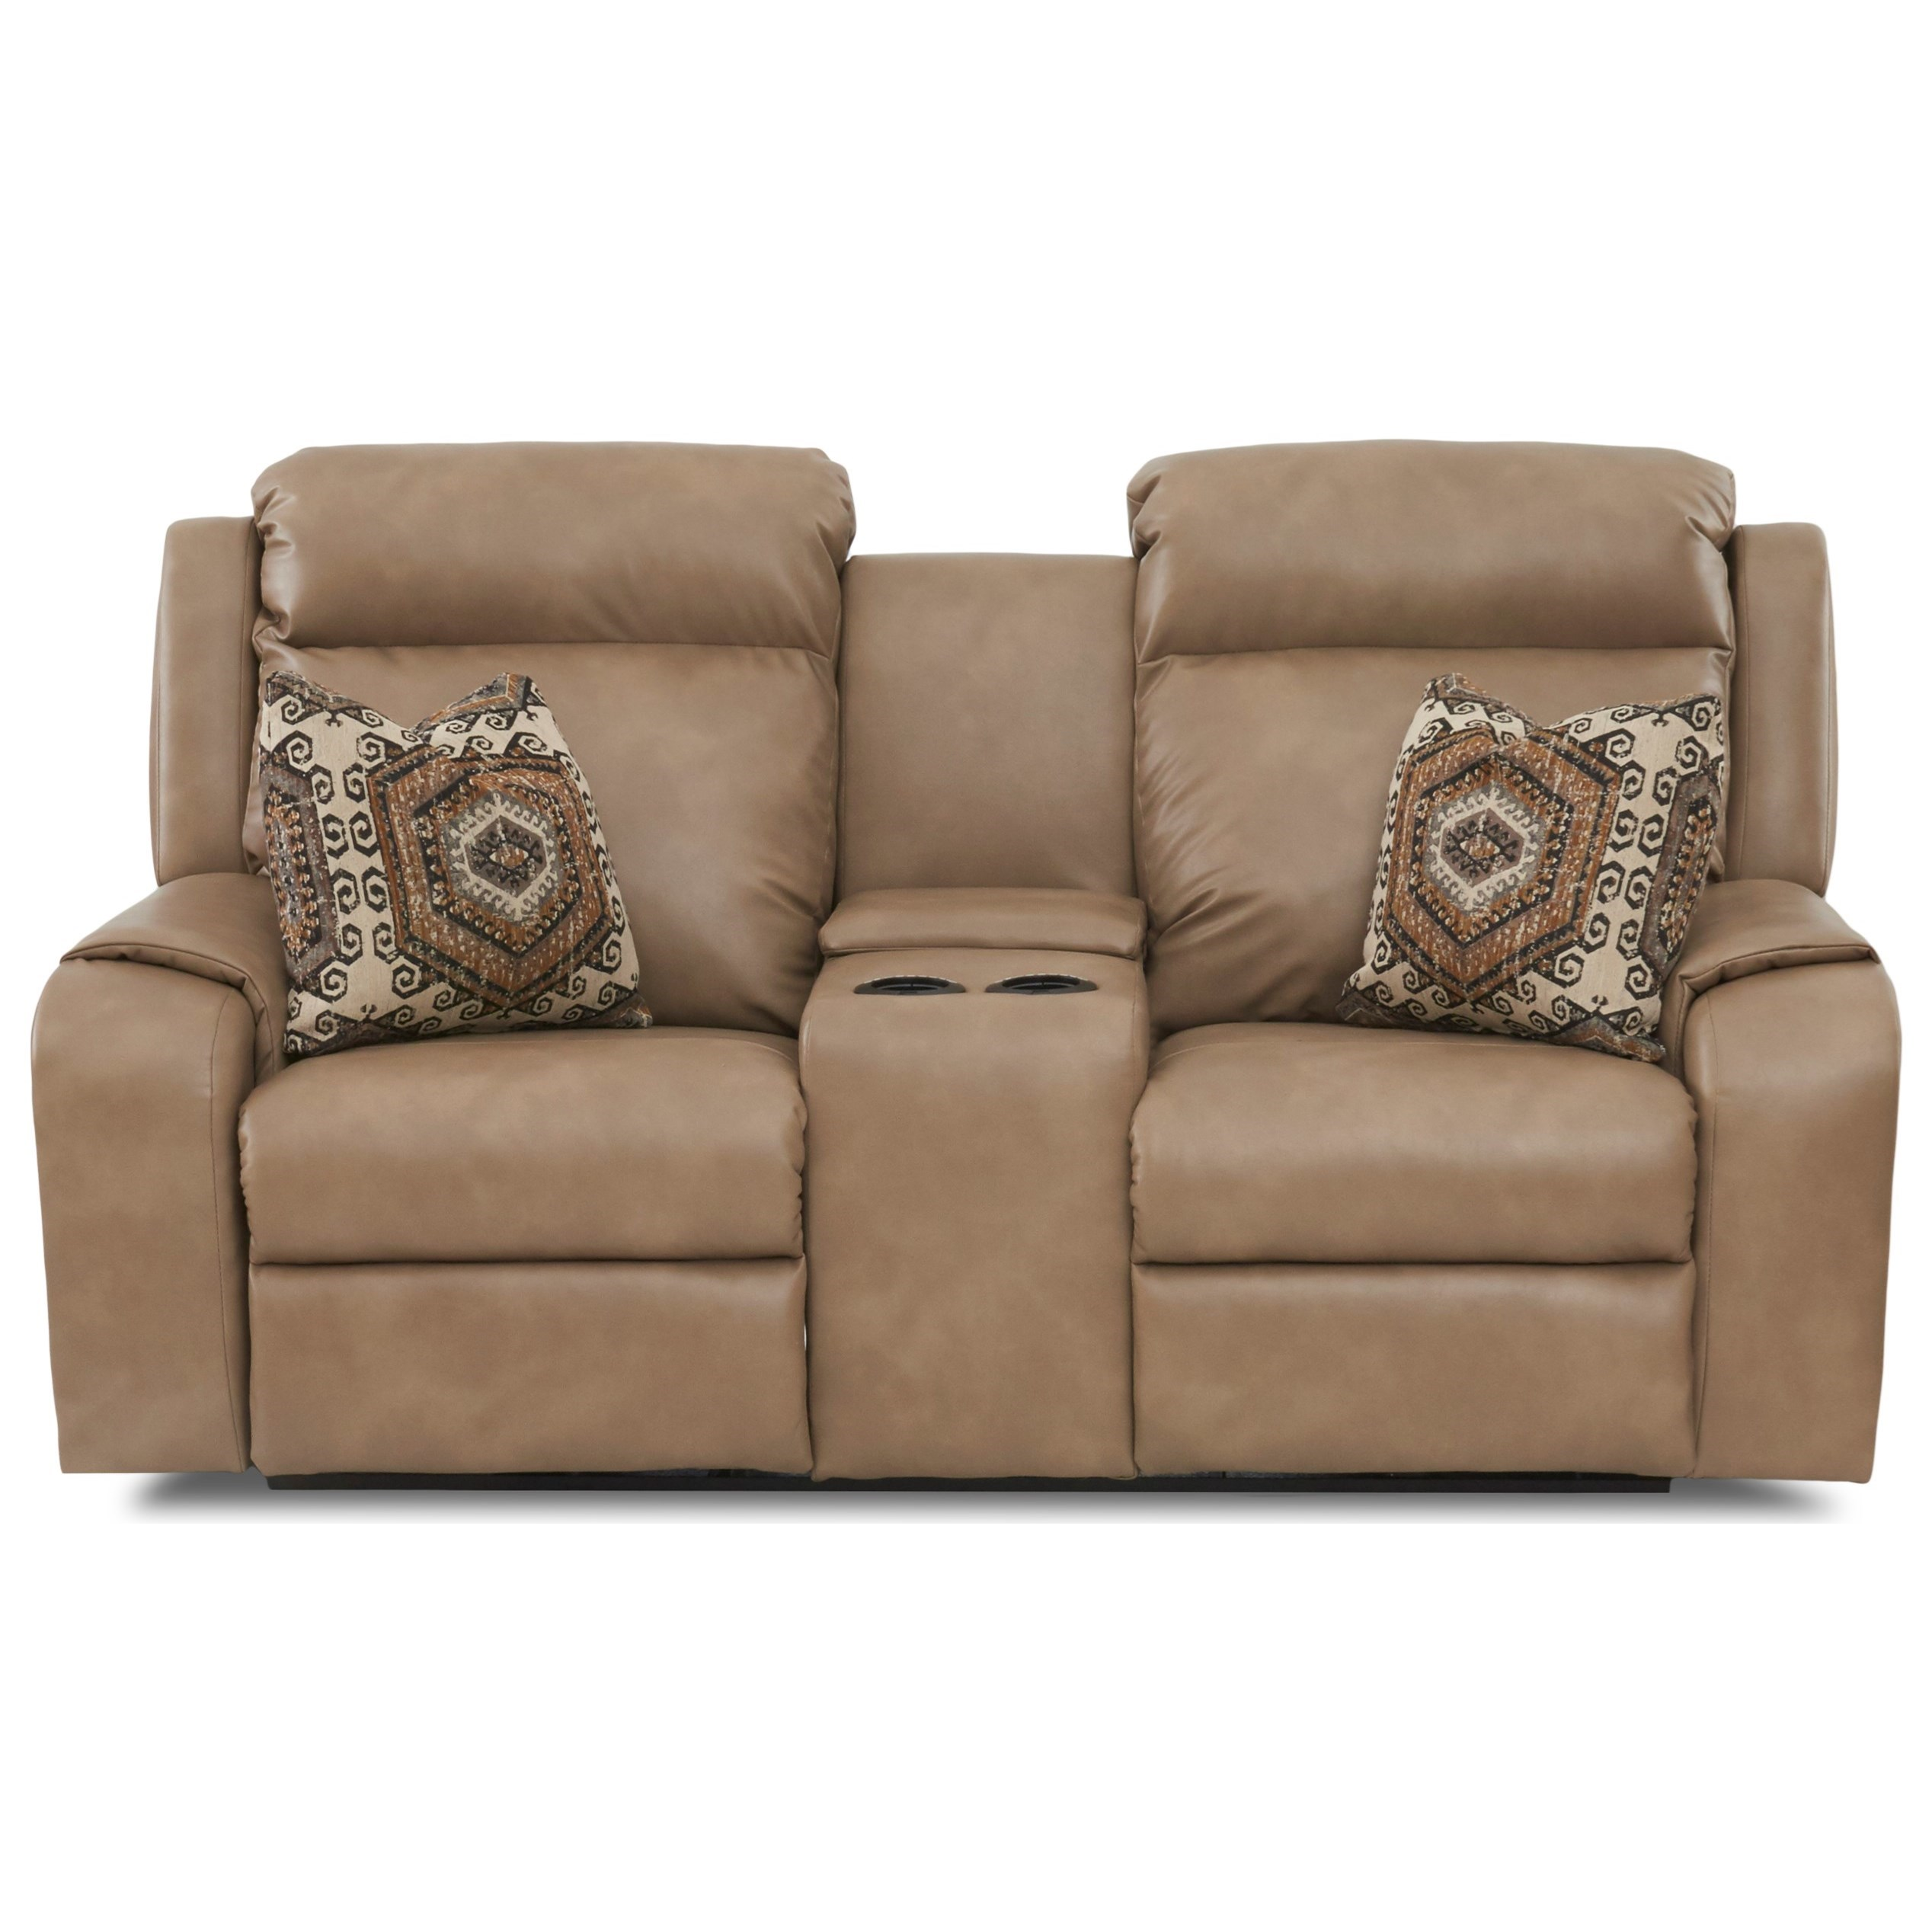 Power Console Reclining Loveseat with Power Headrests, USB Charging Ports, Toss Pillows